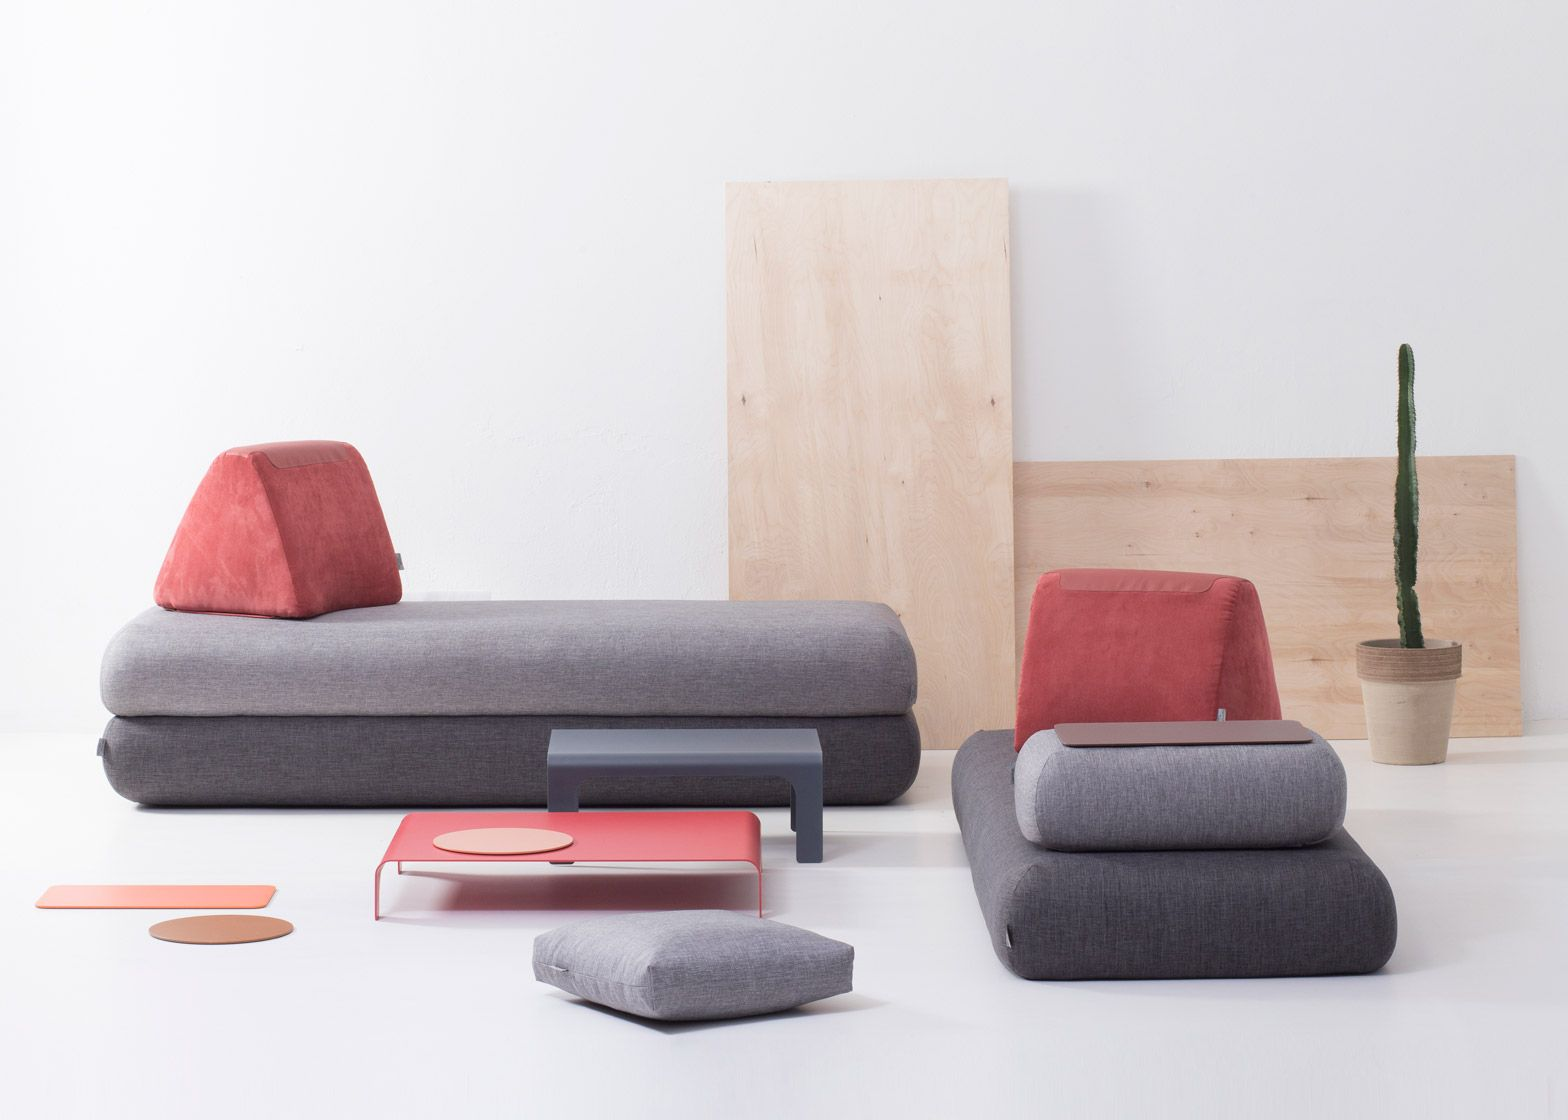 Hannabi Urban Nomad Sofa Hungarian Furniture Brand Hannabi Has Designed A Modular